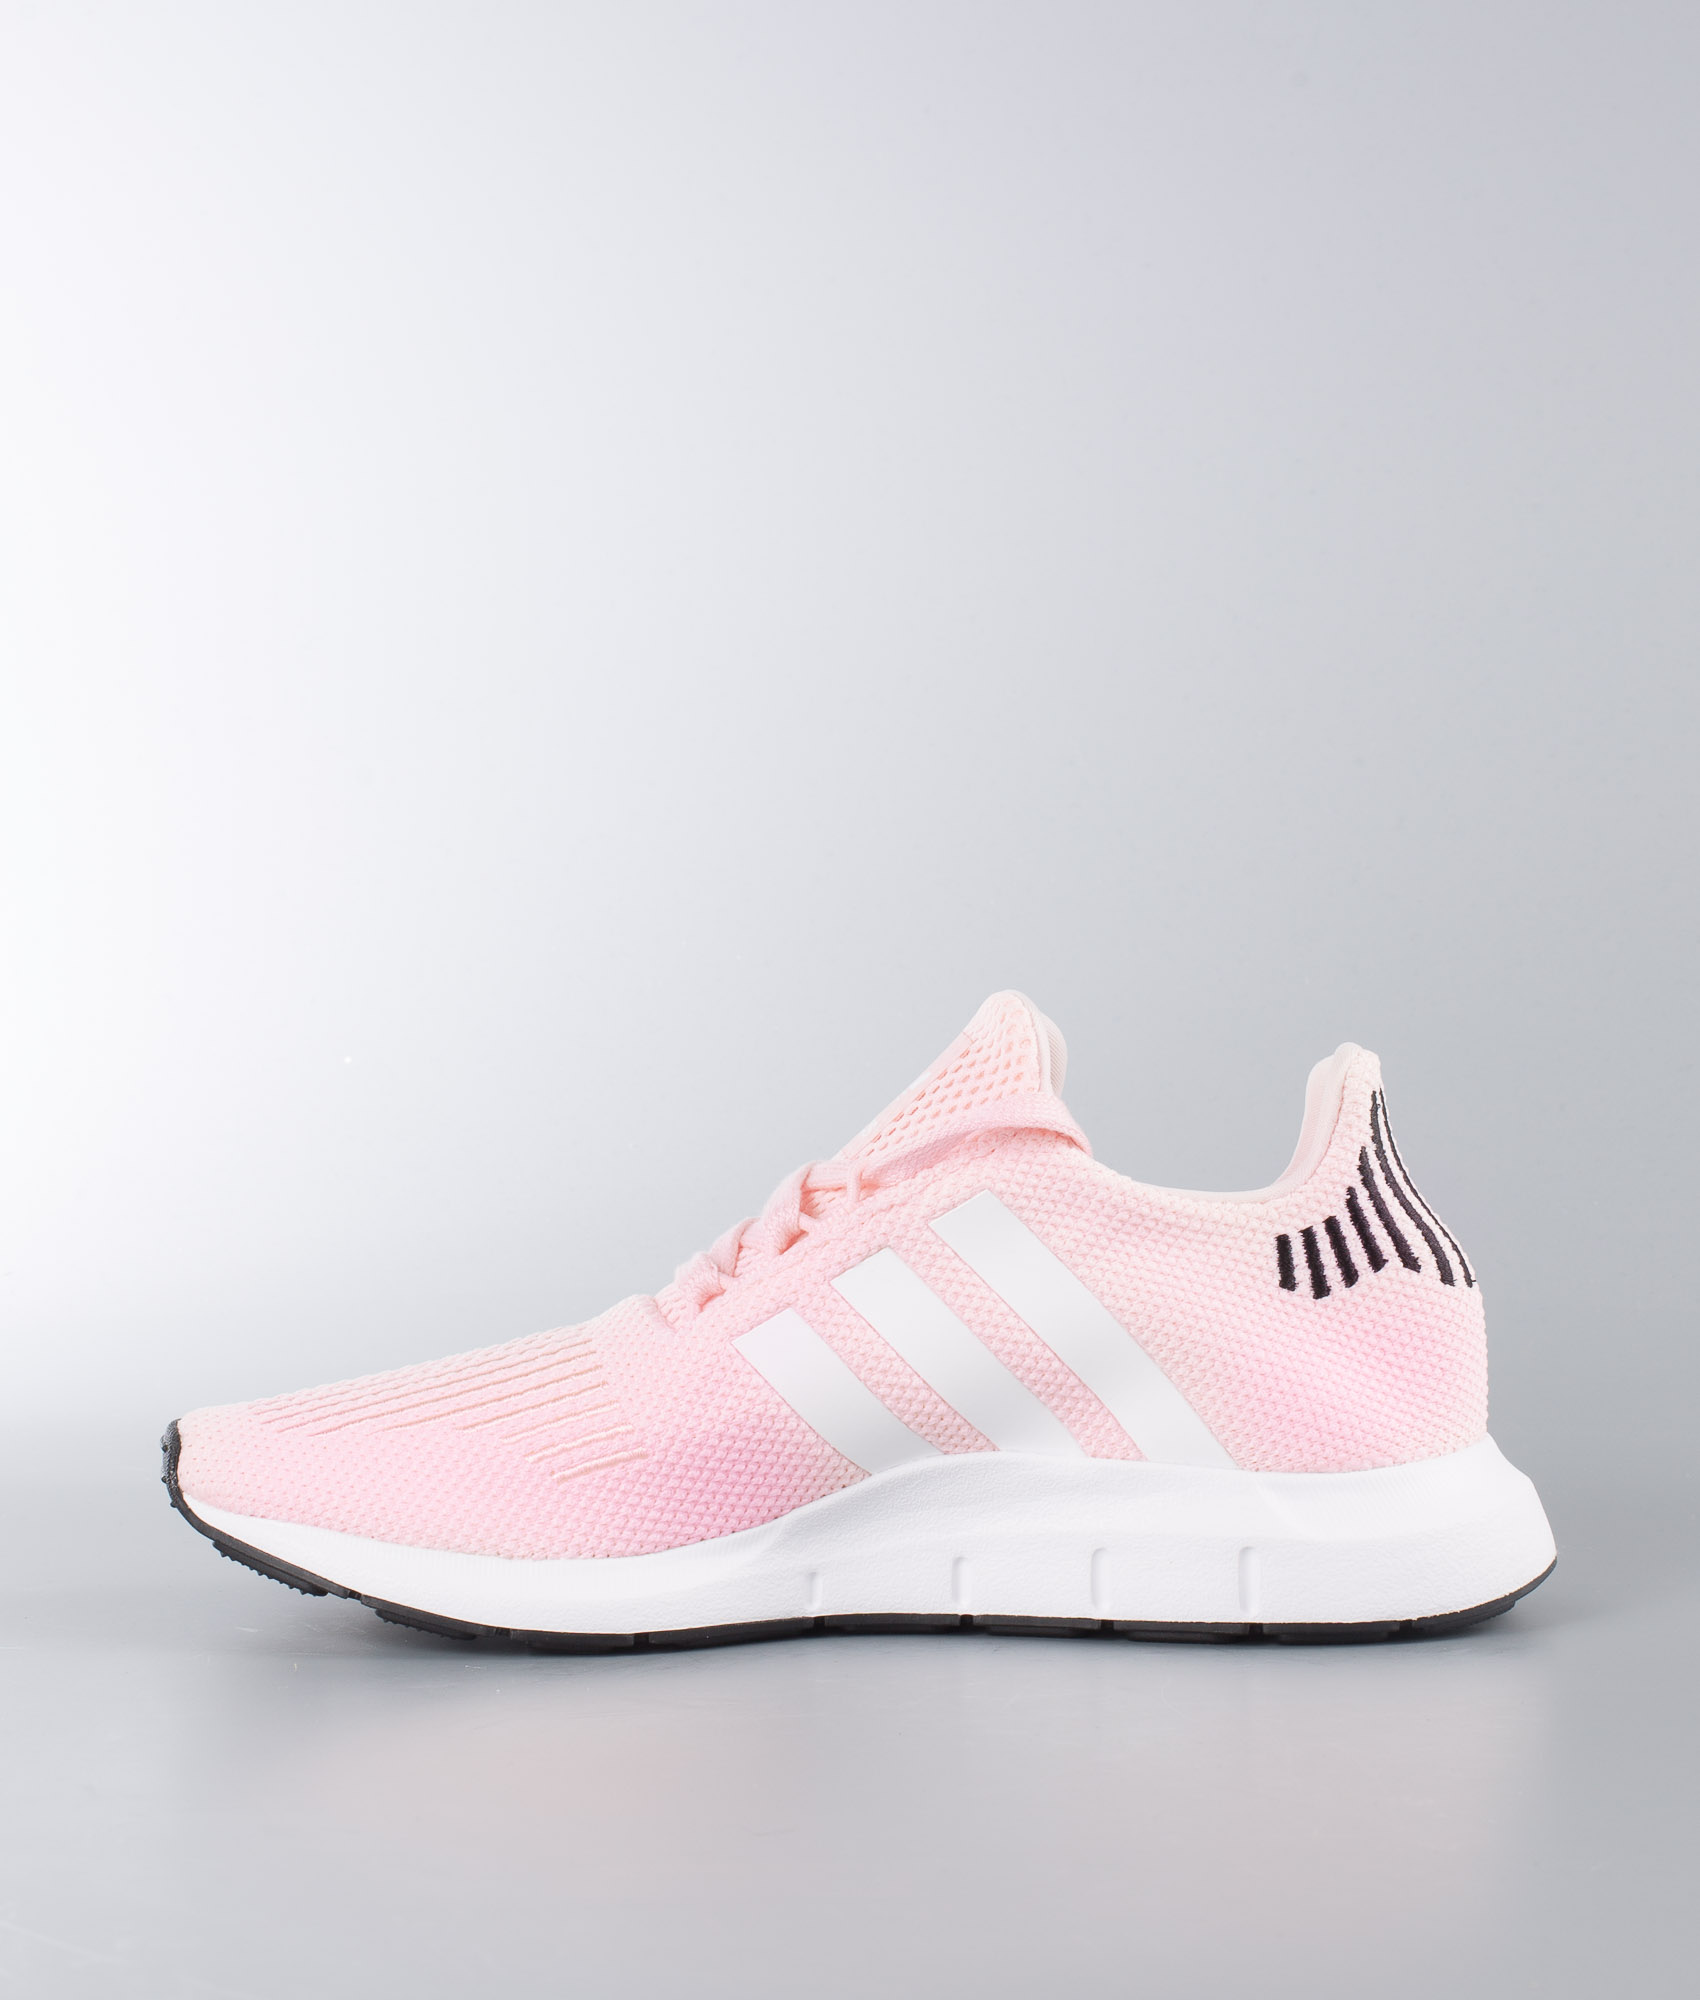 Adidas Originals Swift Run W Shoes Ice Pink/Ftwr White/Core Black